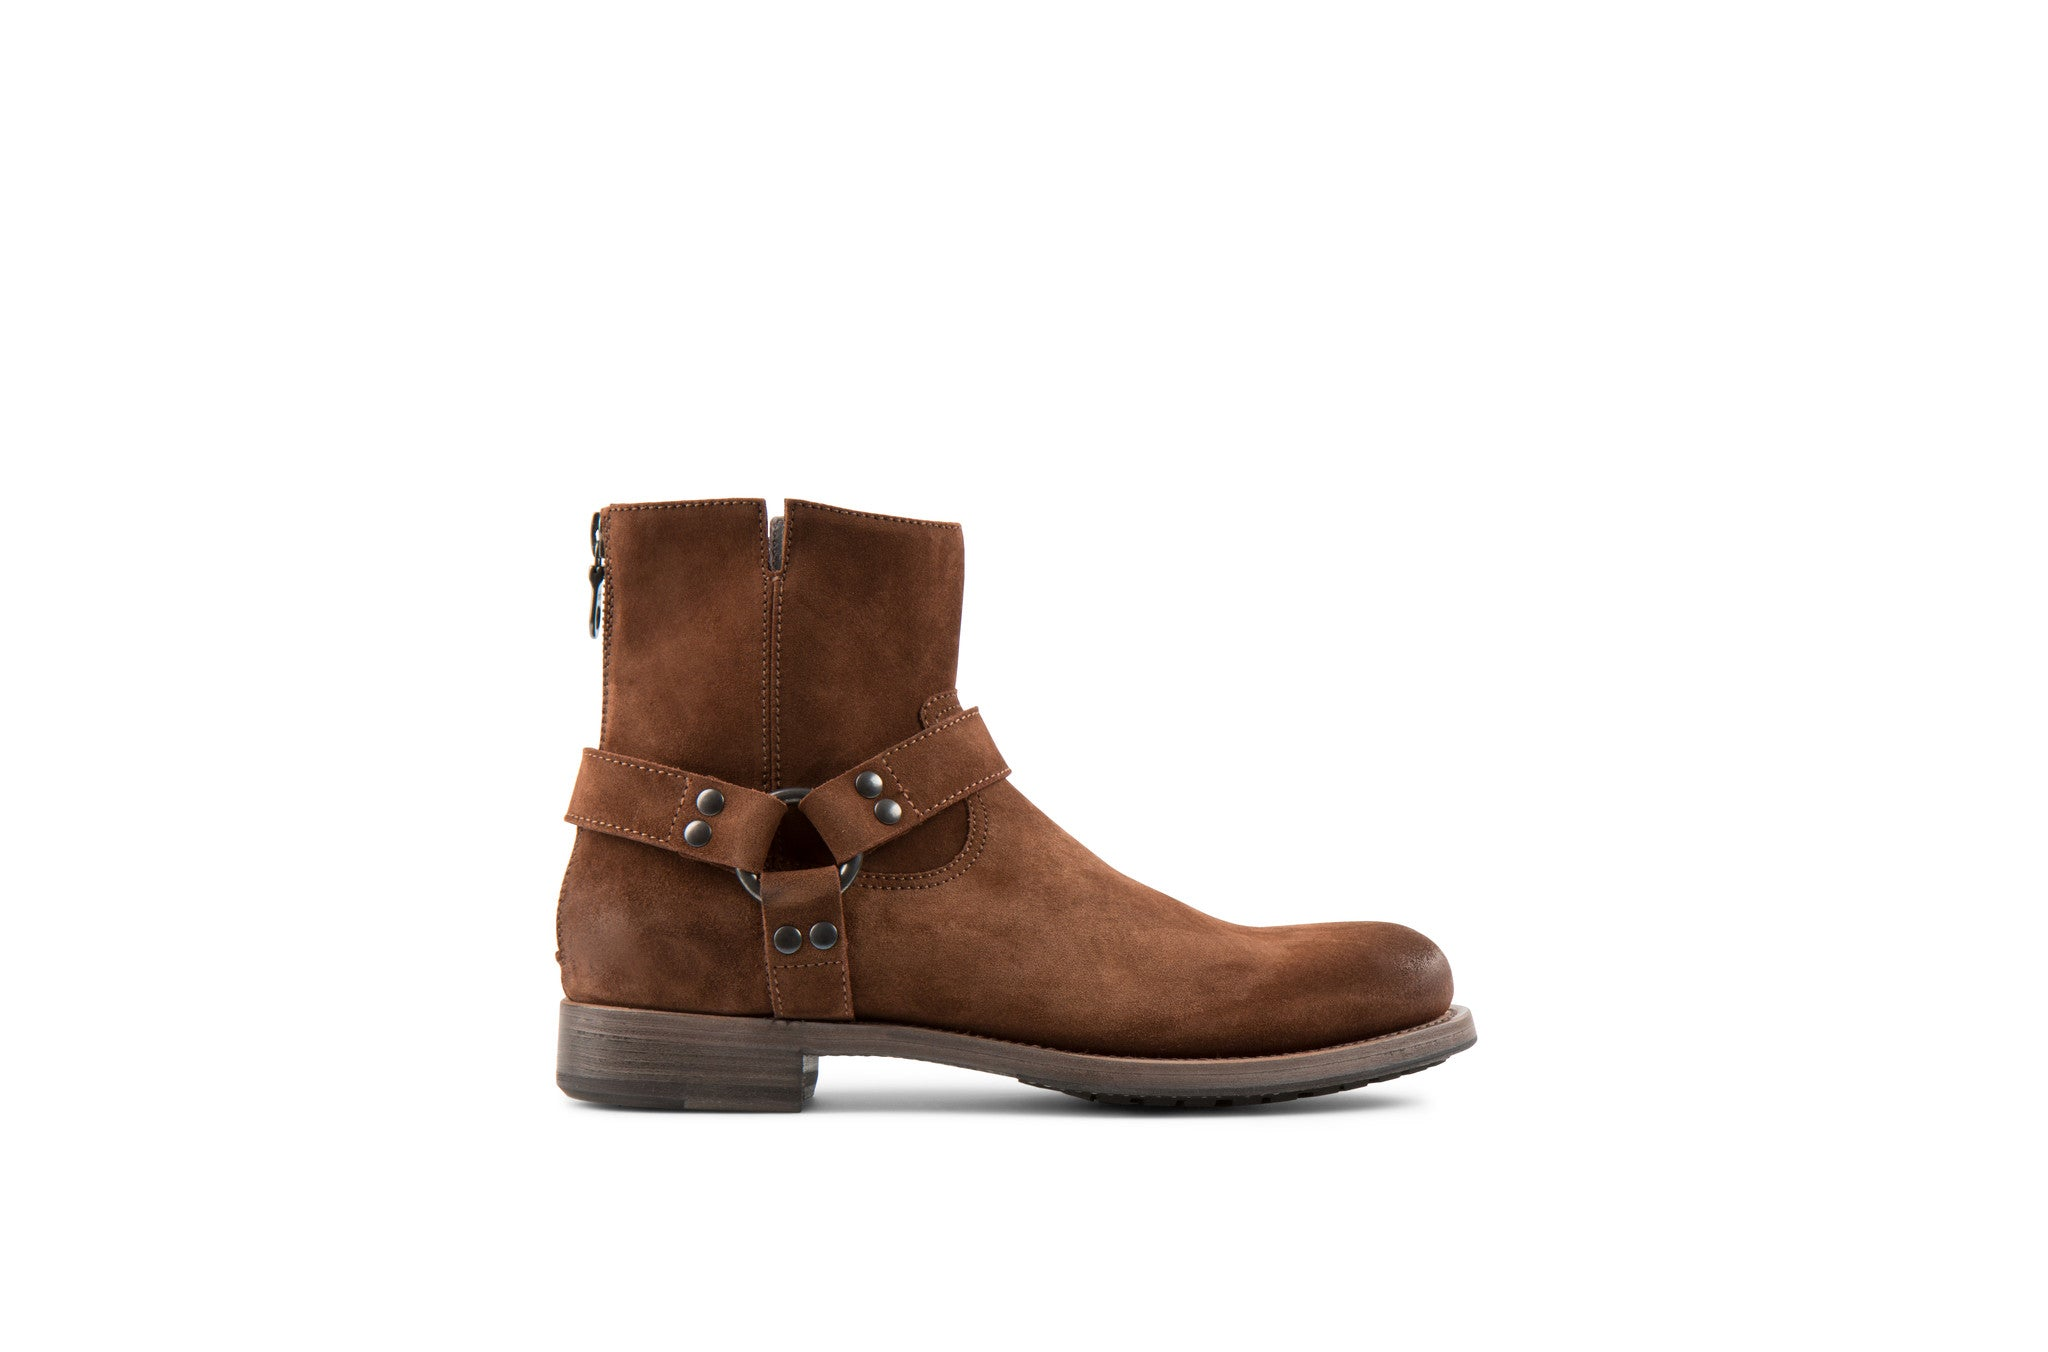 Hives Tan Suede Leather Harness Boots